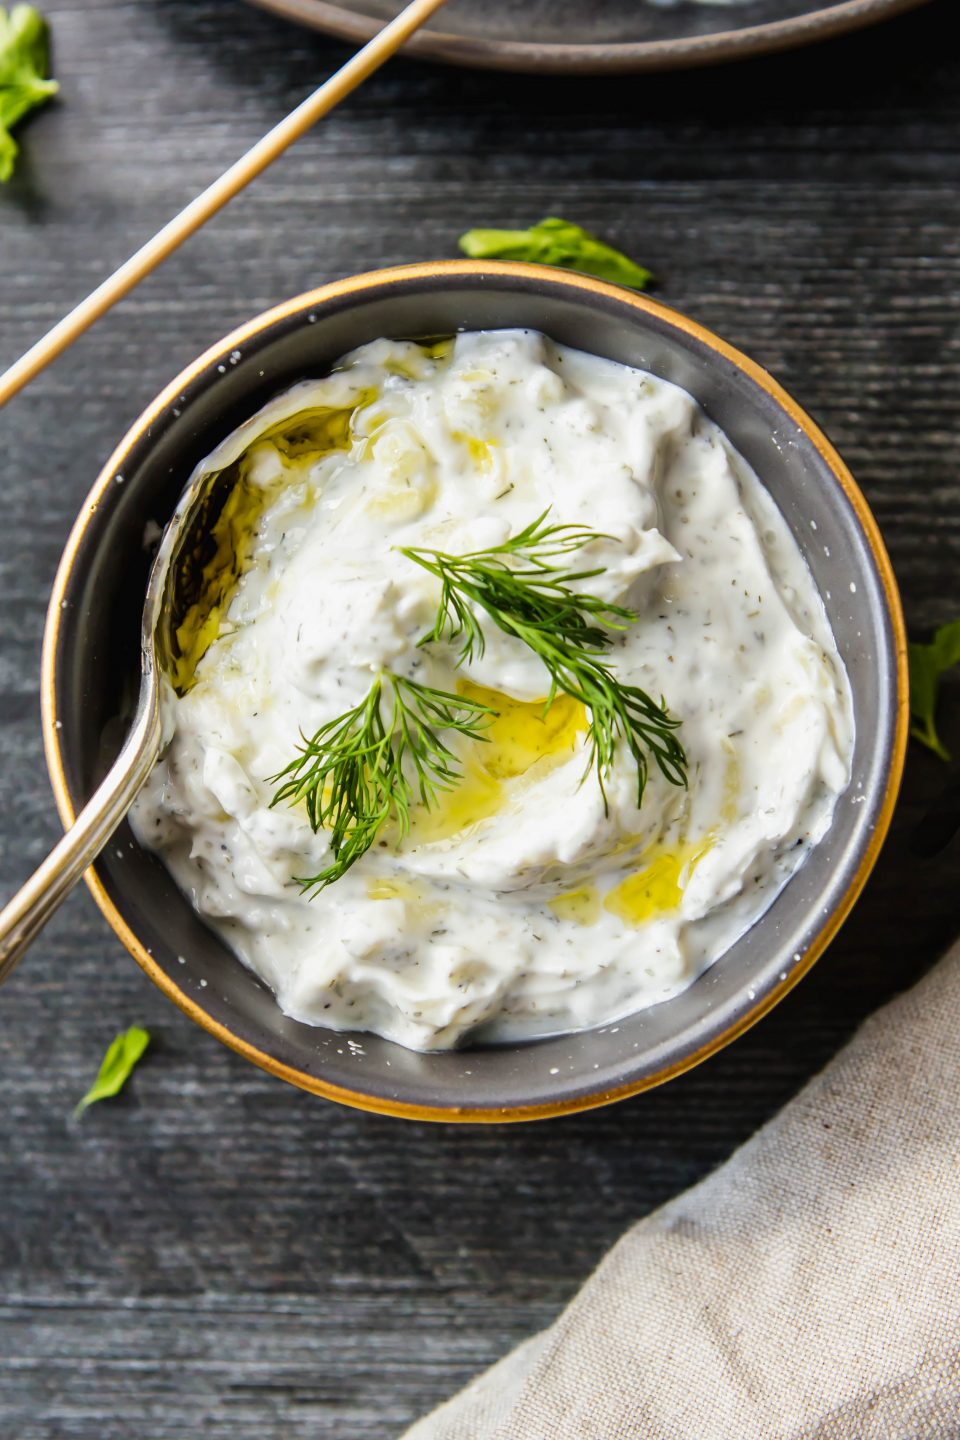 An overhead photo of a bowl of tzatziki sauce made with greek yogurt, lemon, dill and garlic. It is swirled with olive oil and topped with fresh dill.